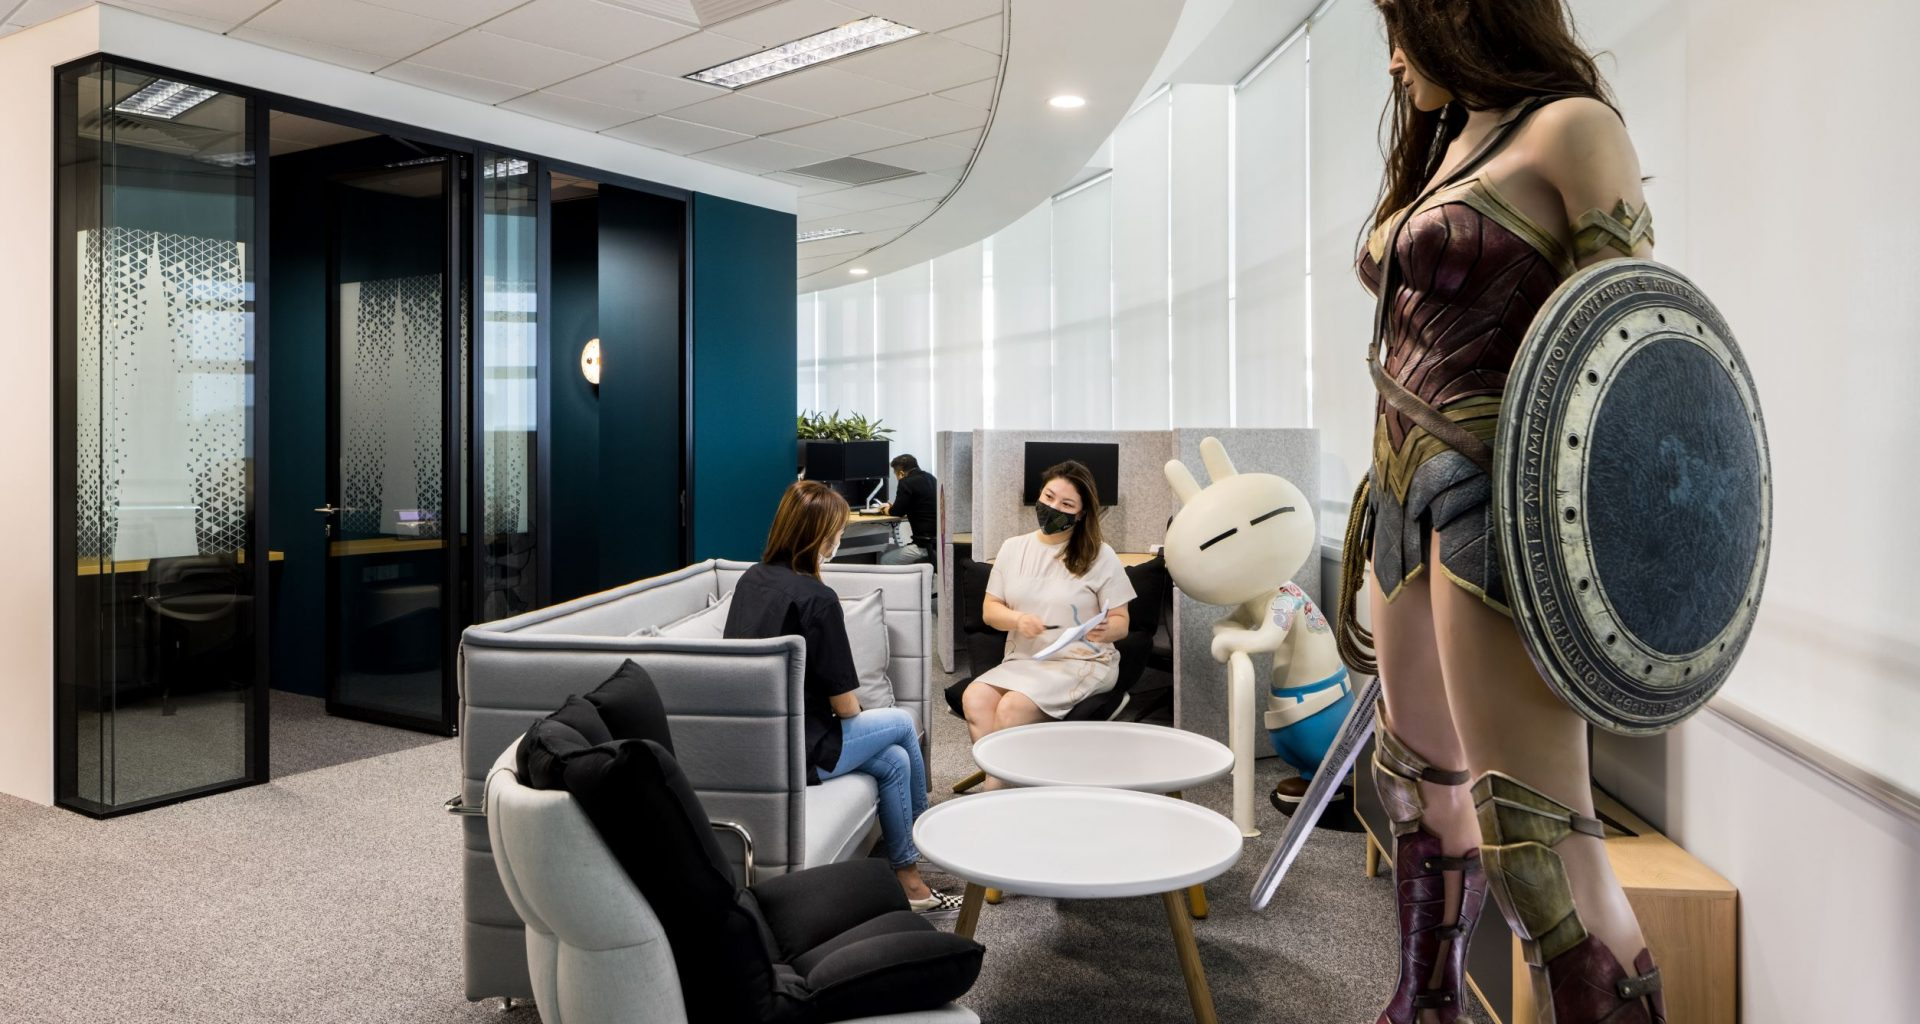 WarnerMedia opens new regional hub in Singapore - Integrated base to generate jobs and foster creative skills - Alvinology